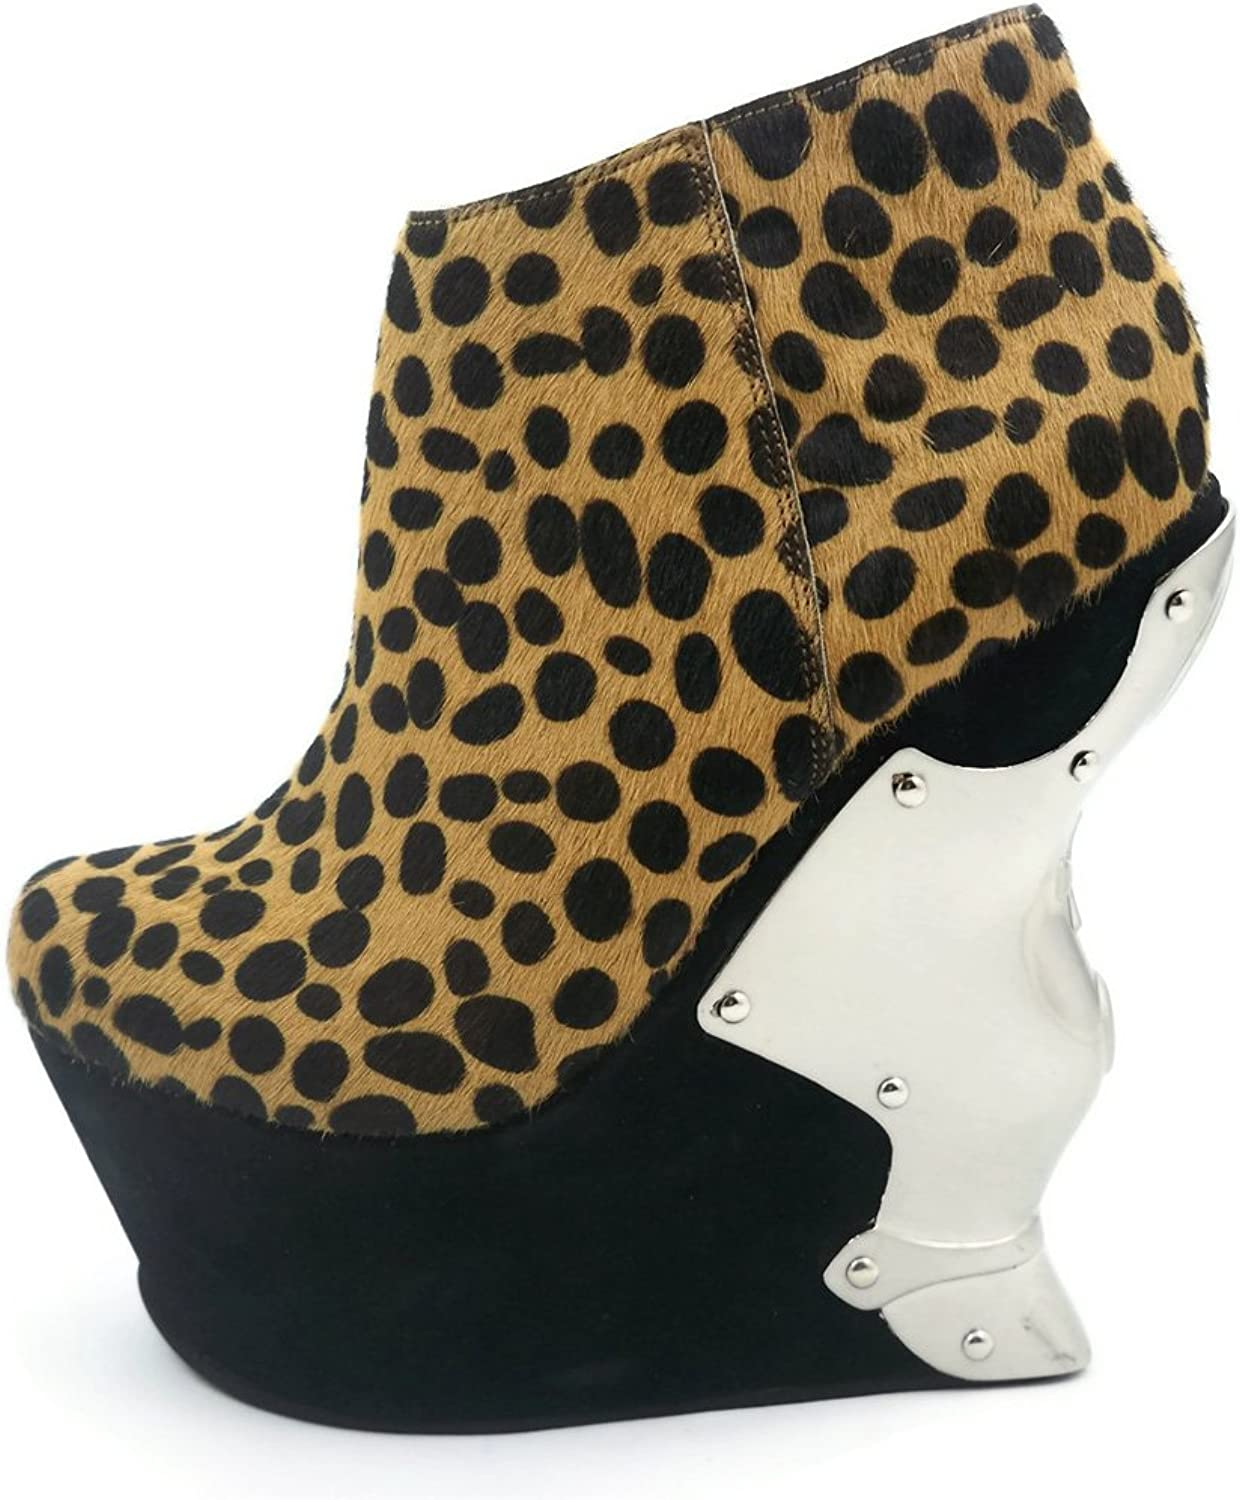 Hades shoes H-Pantera Ankle boot of soft leopard fabric & inner zipper 10 Leopard